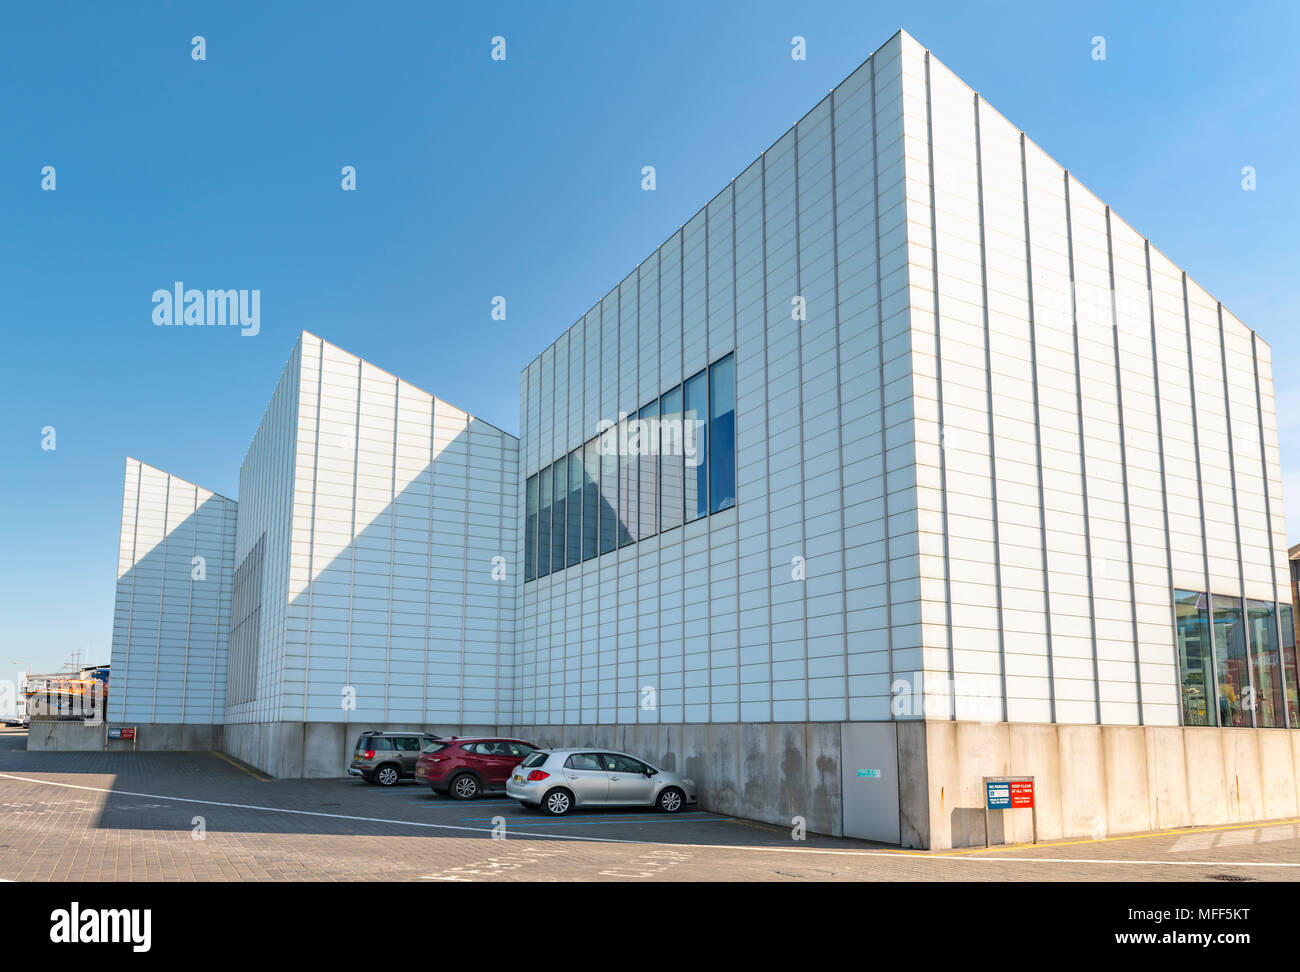 The turner contemporary building which is a major tourist attraction to Margate kent - Stock Image